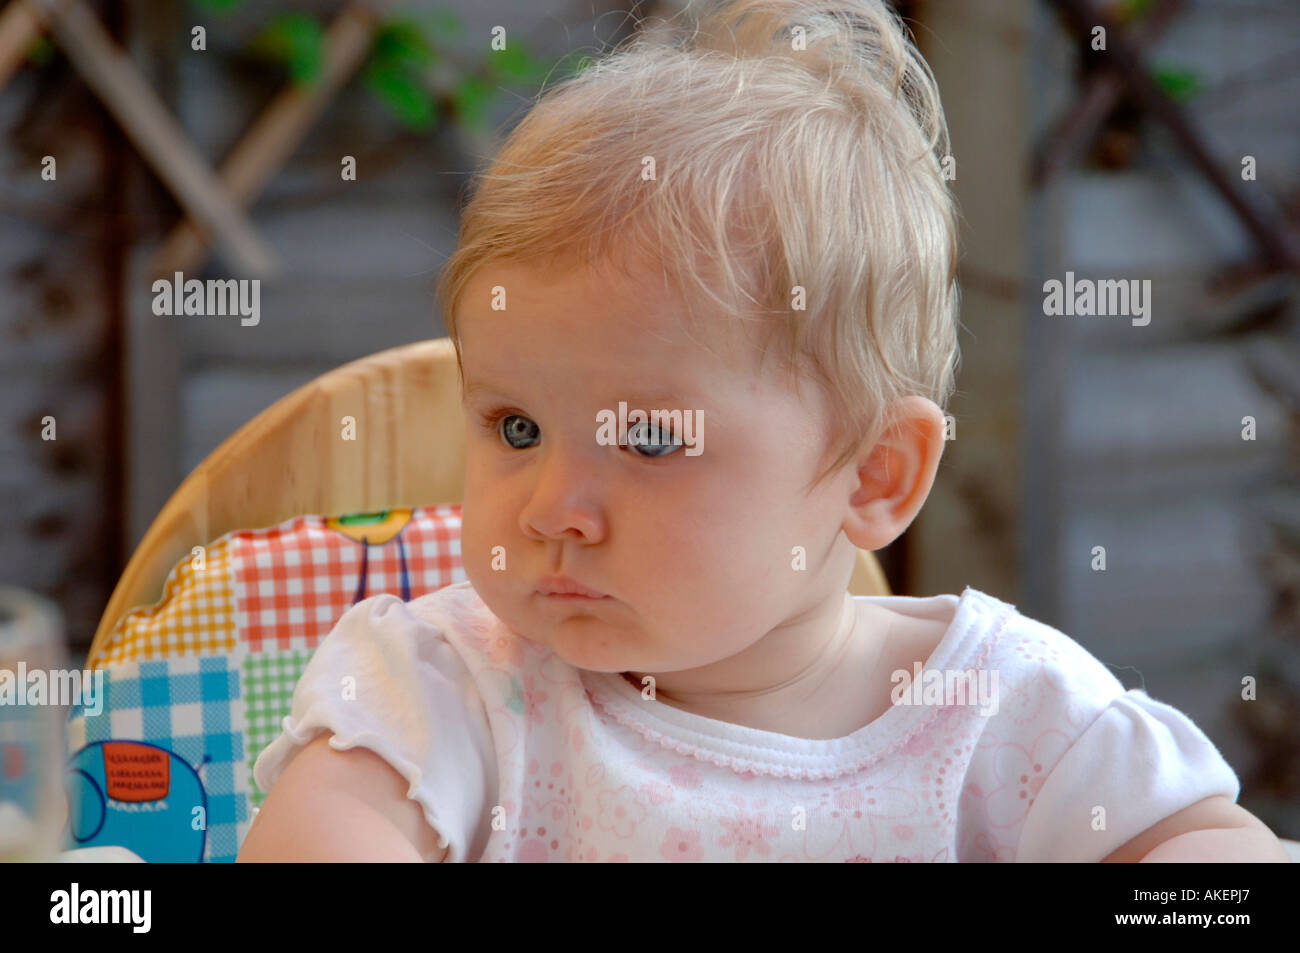 Baby With Blonde Hair 77